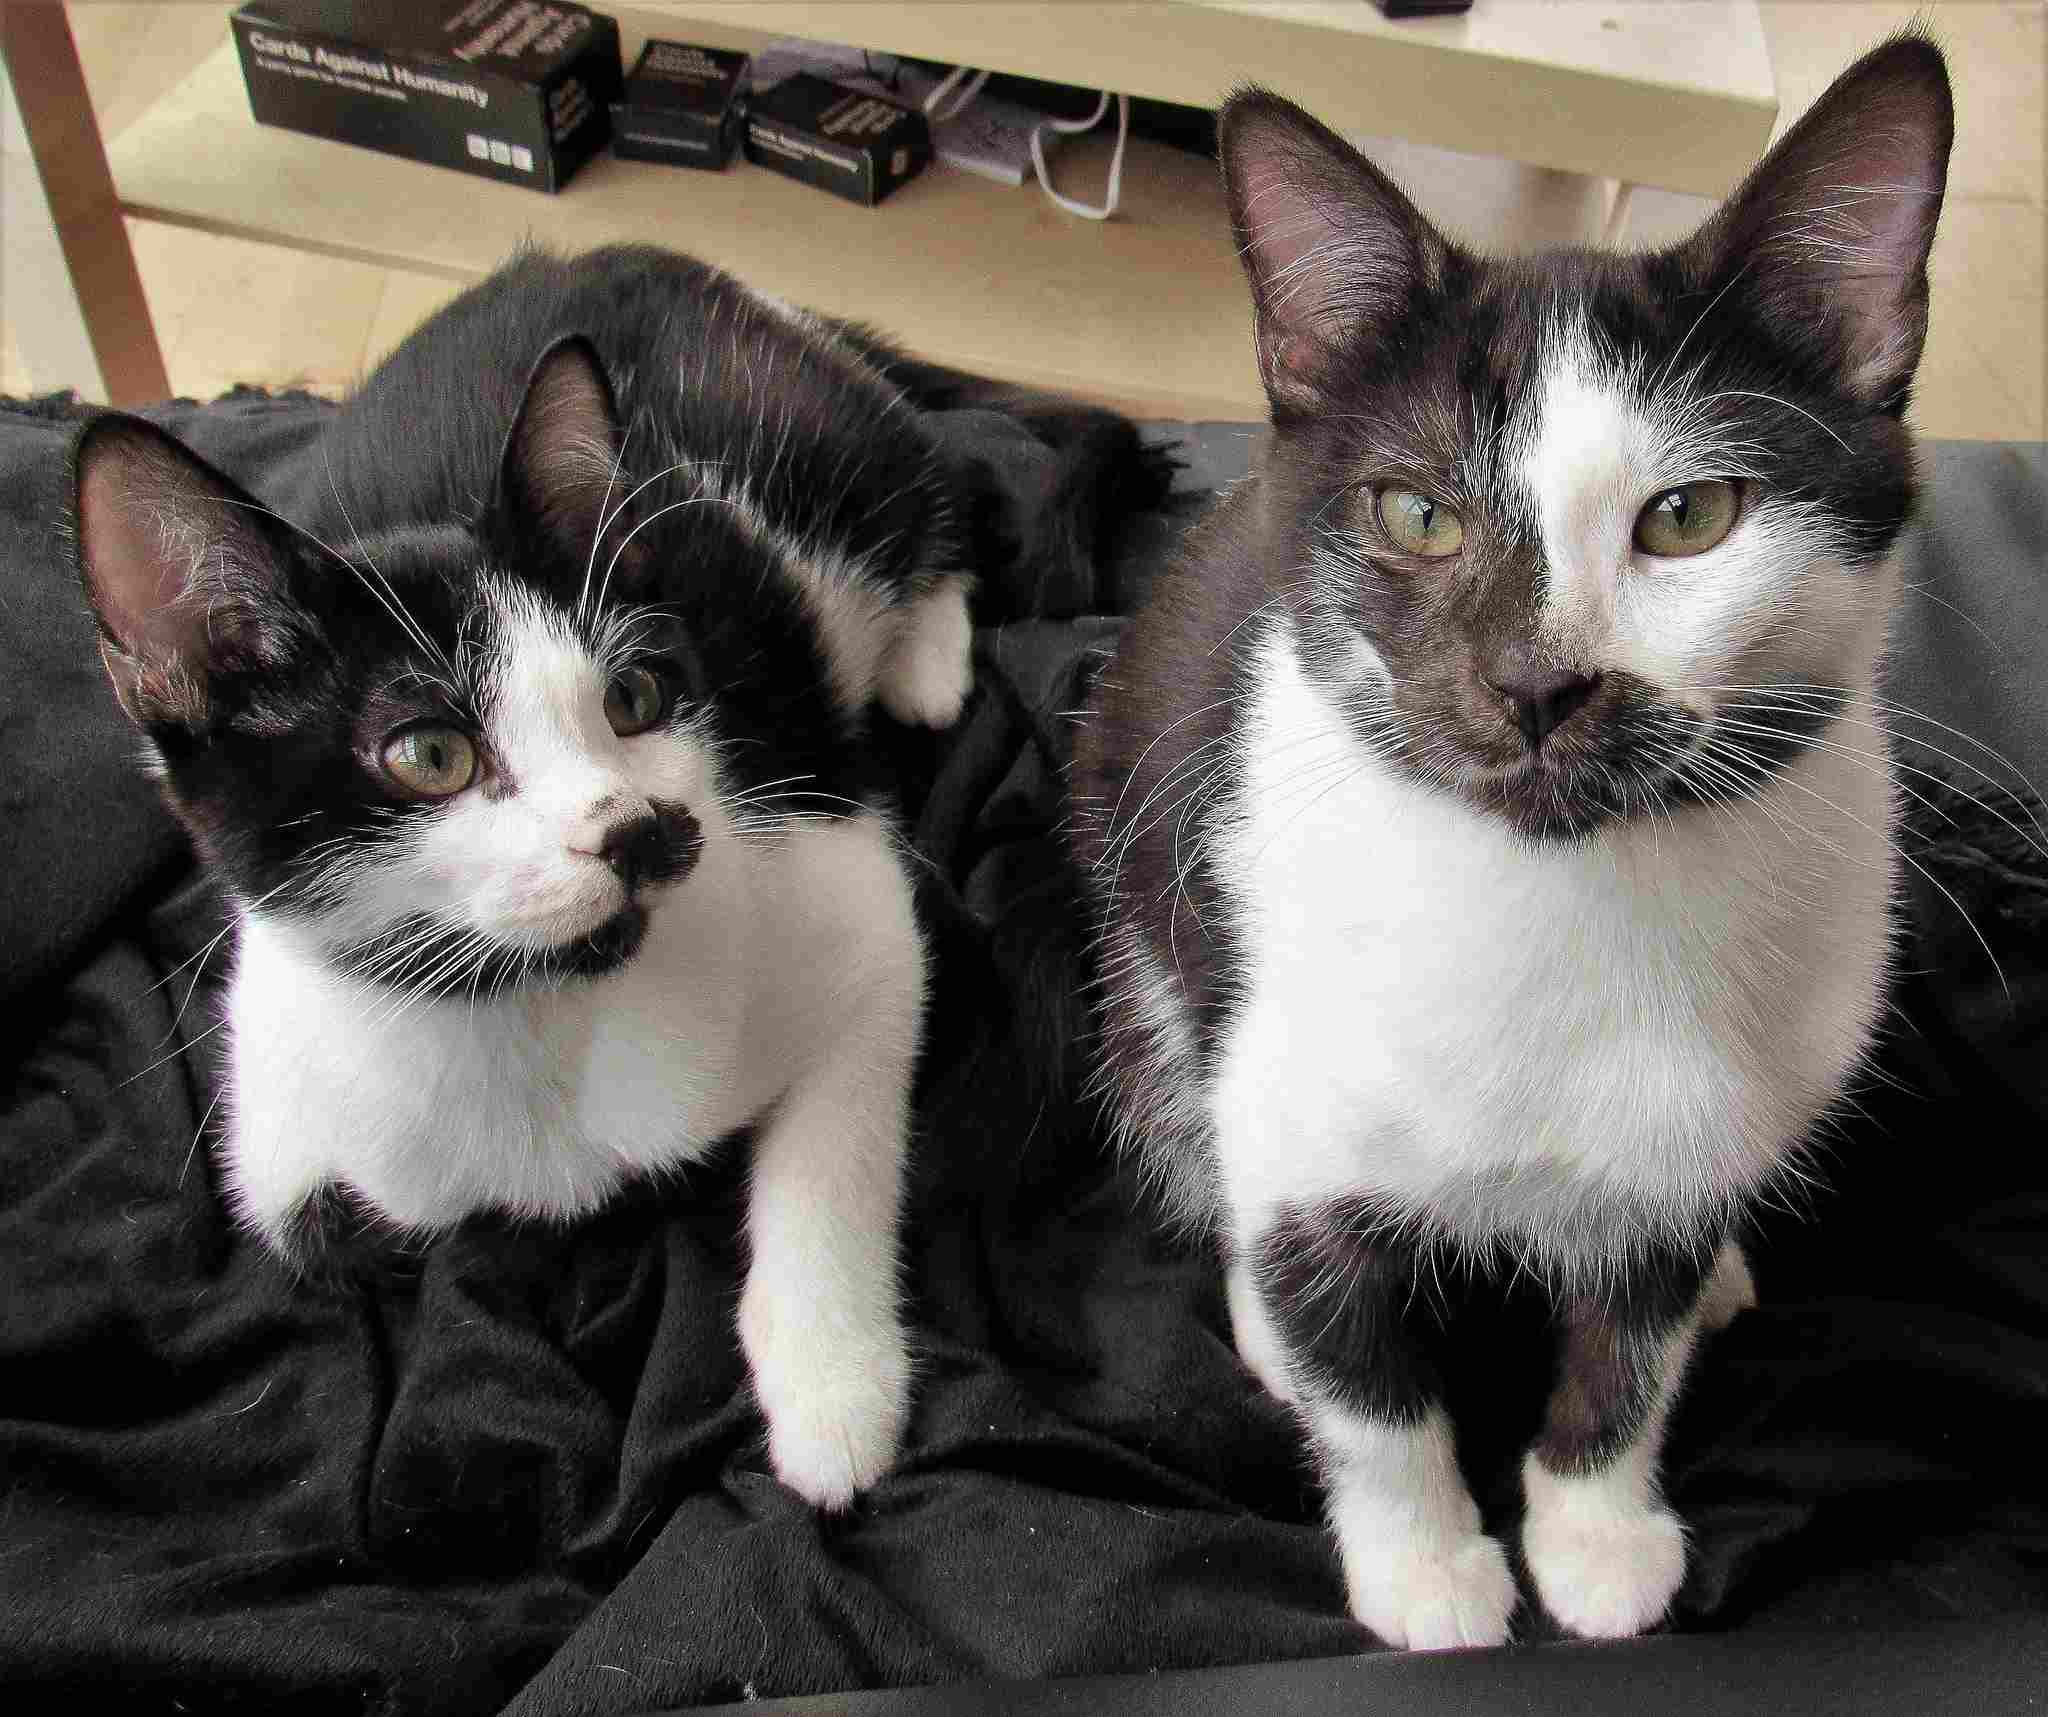 two black and white cats sitting on a black blanket.